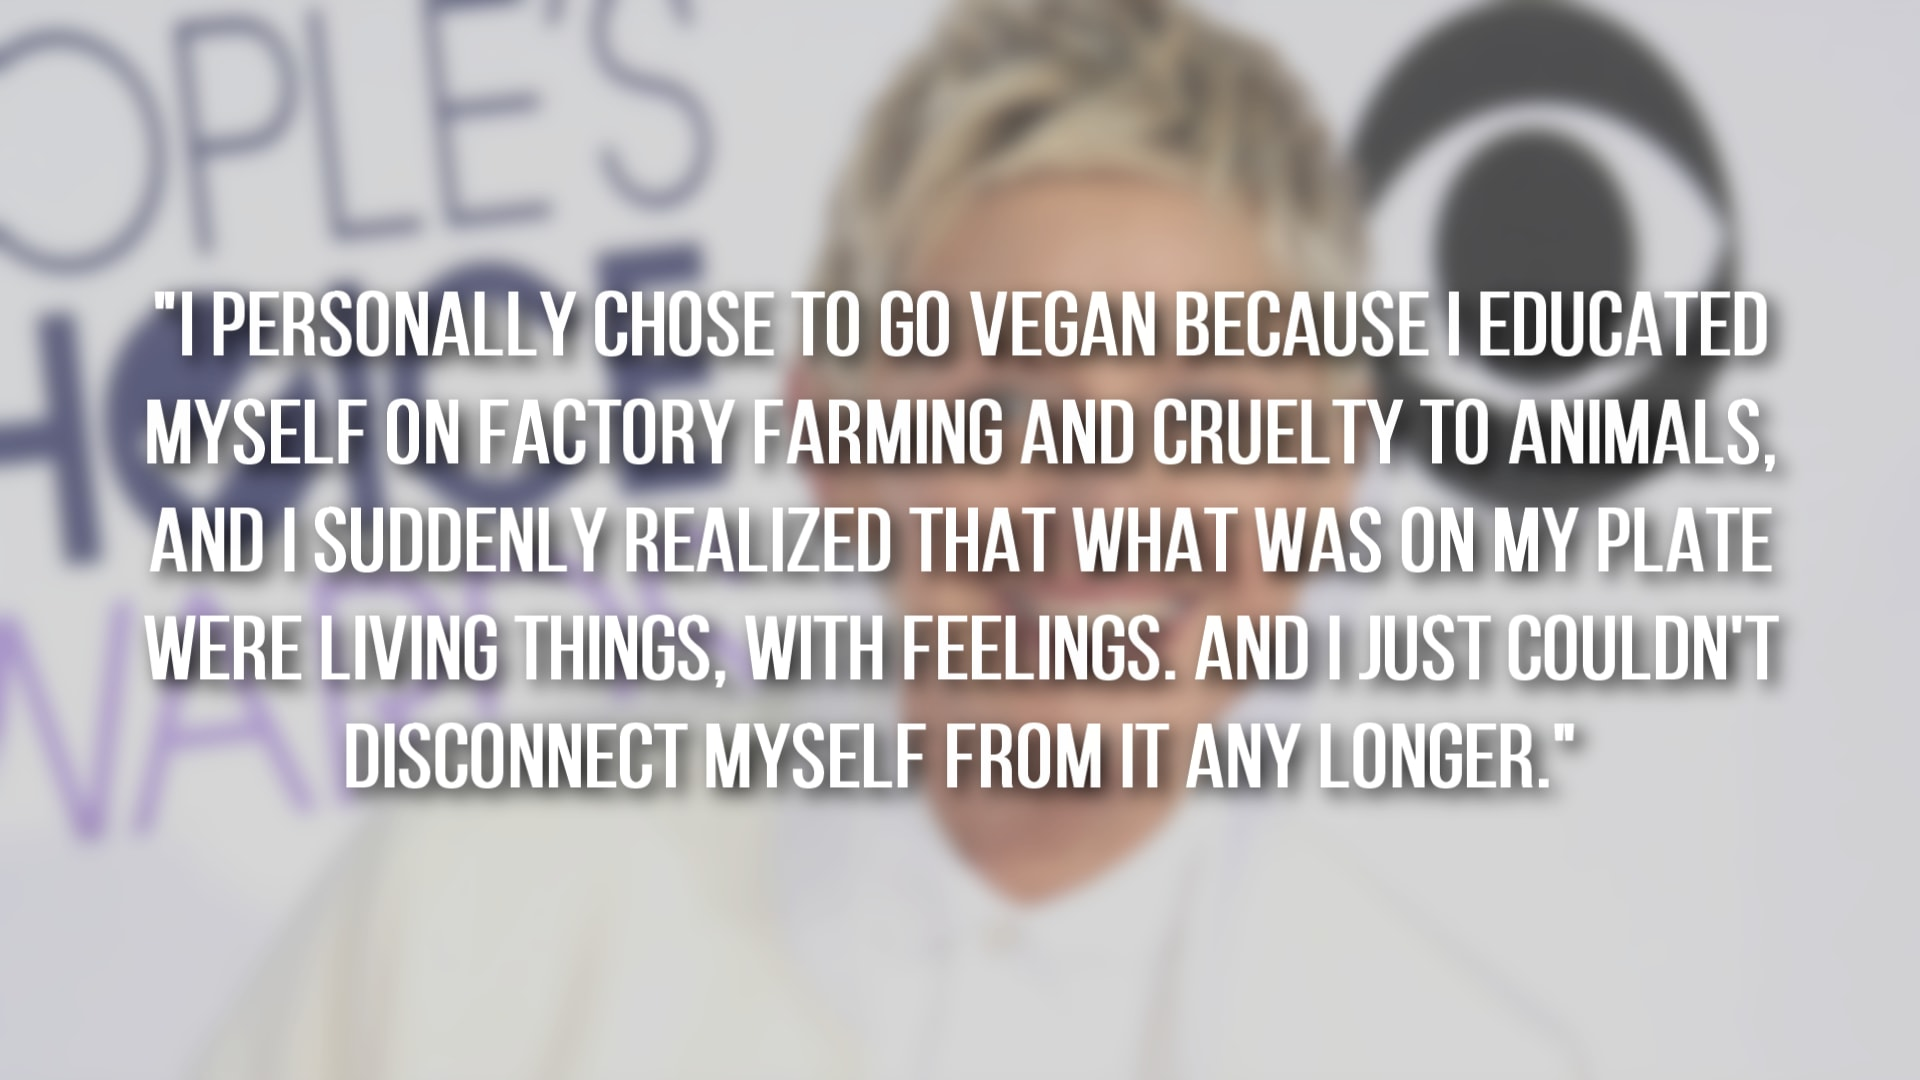 Vegan Quotes 10 Amazing Vegan Celebrity Quotes That Will Inspire You